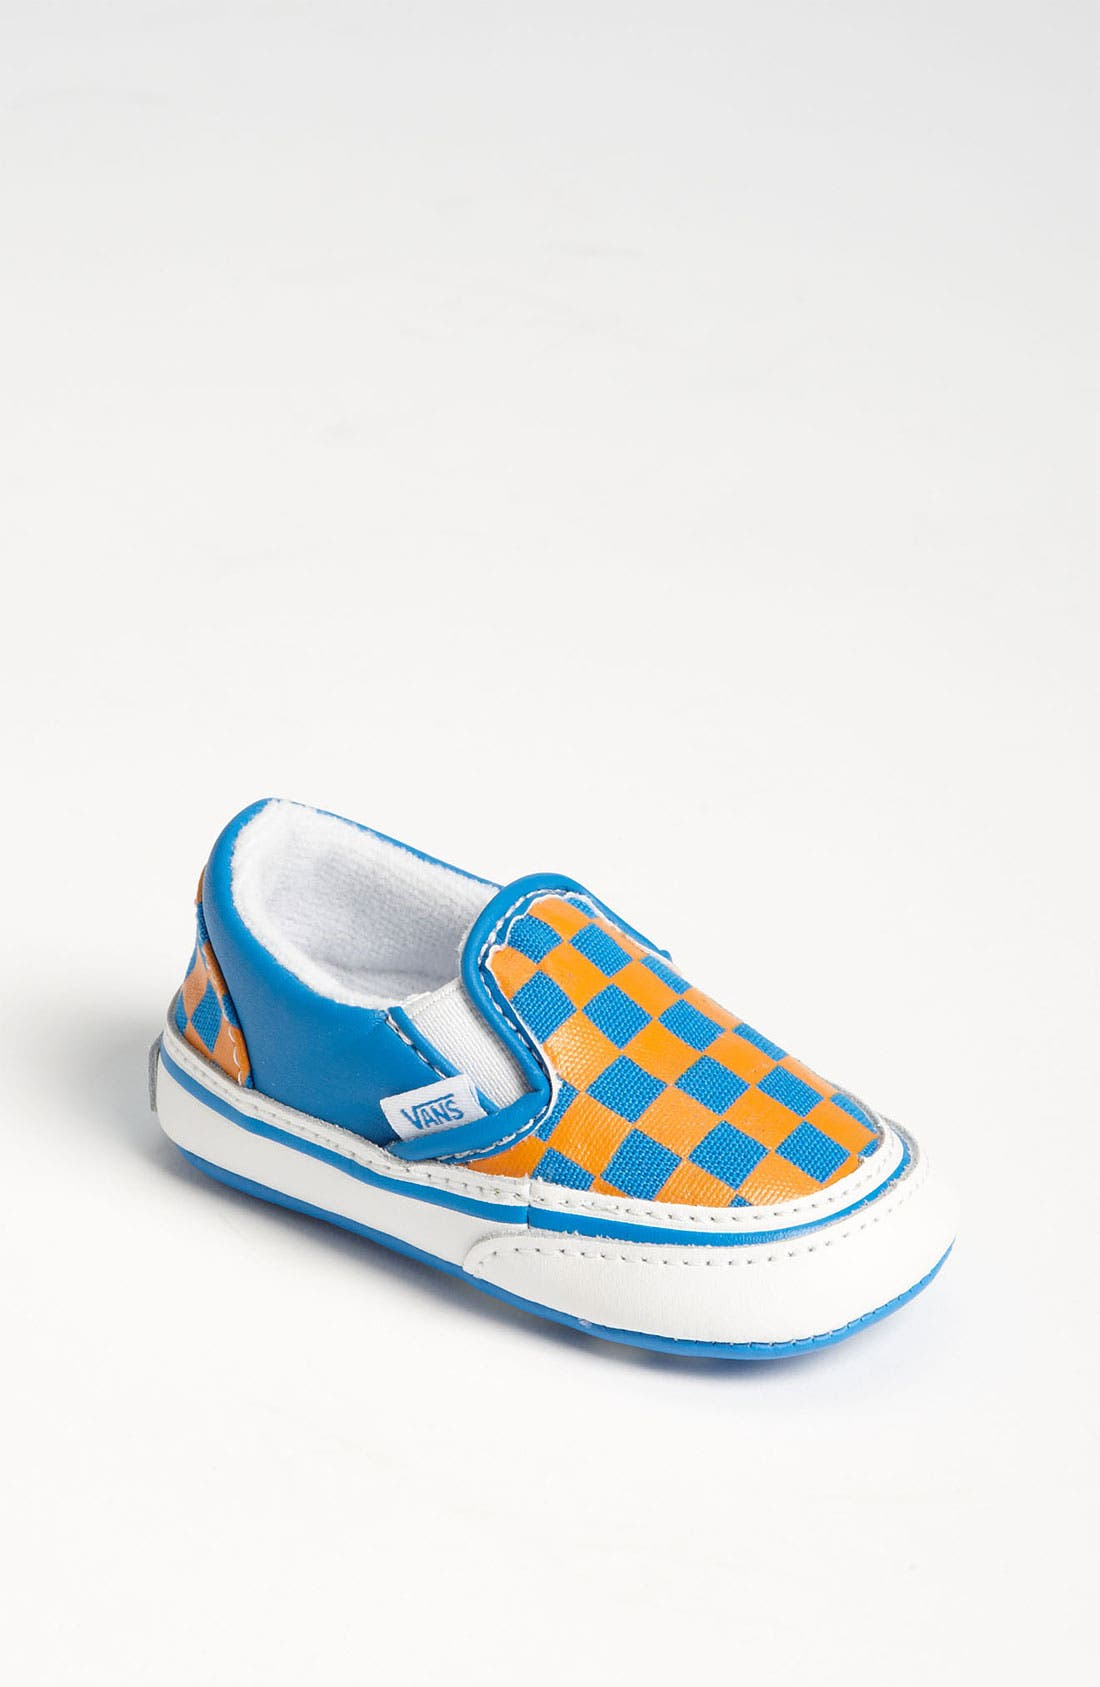 Main Image - Vans 'Classic - Checker' Crib Shoe (Infant)